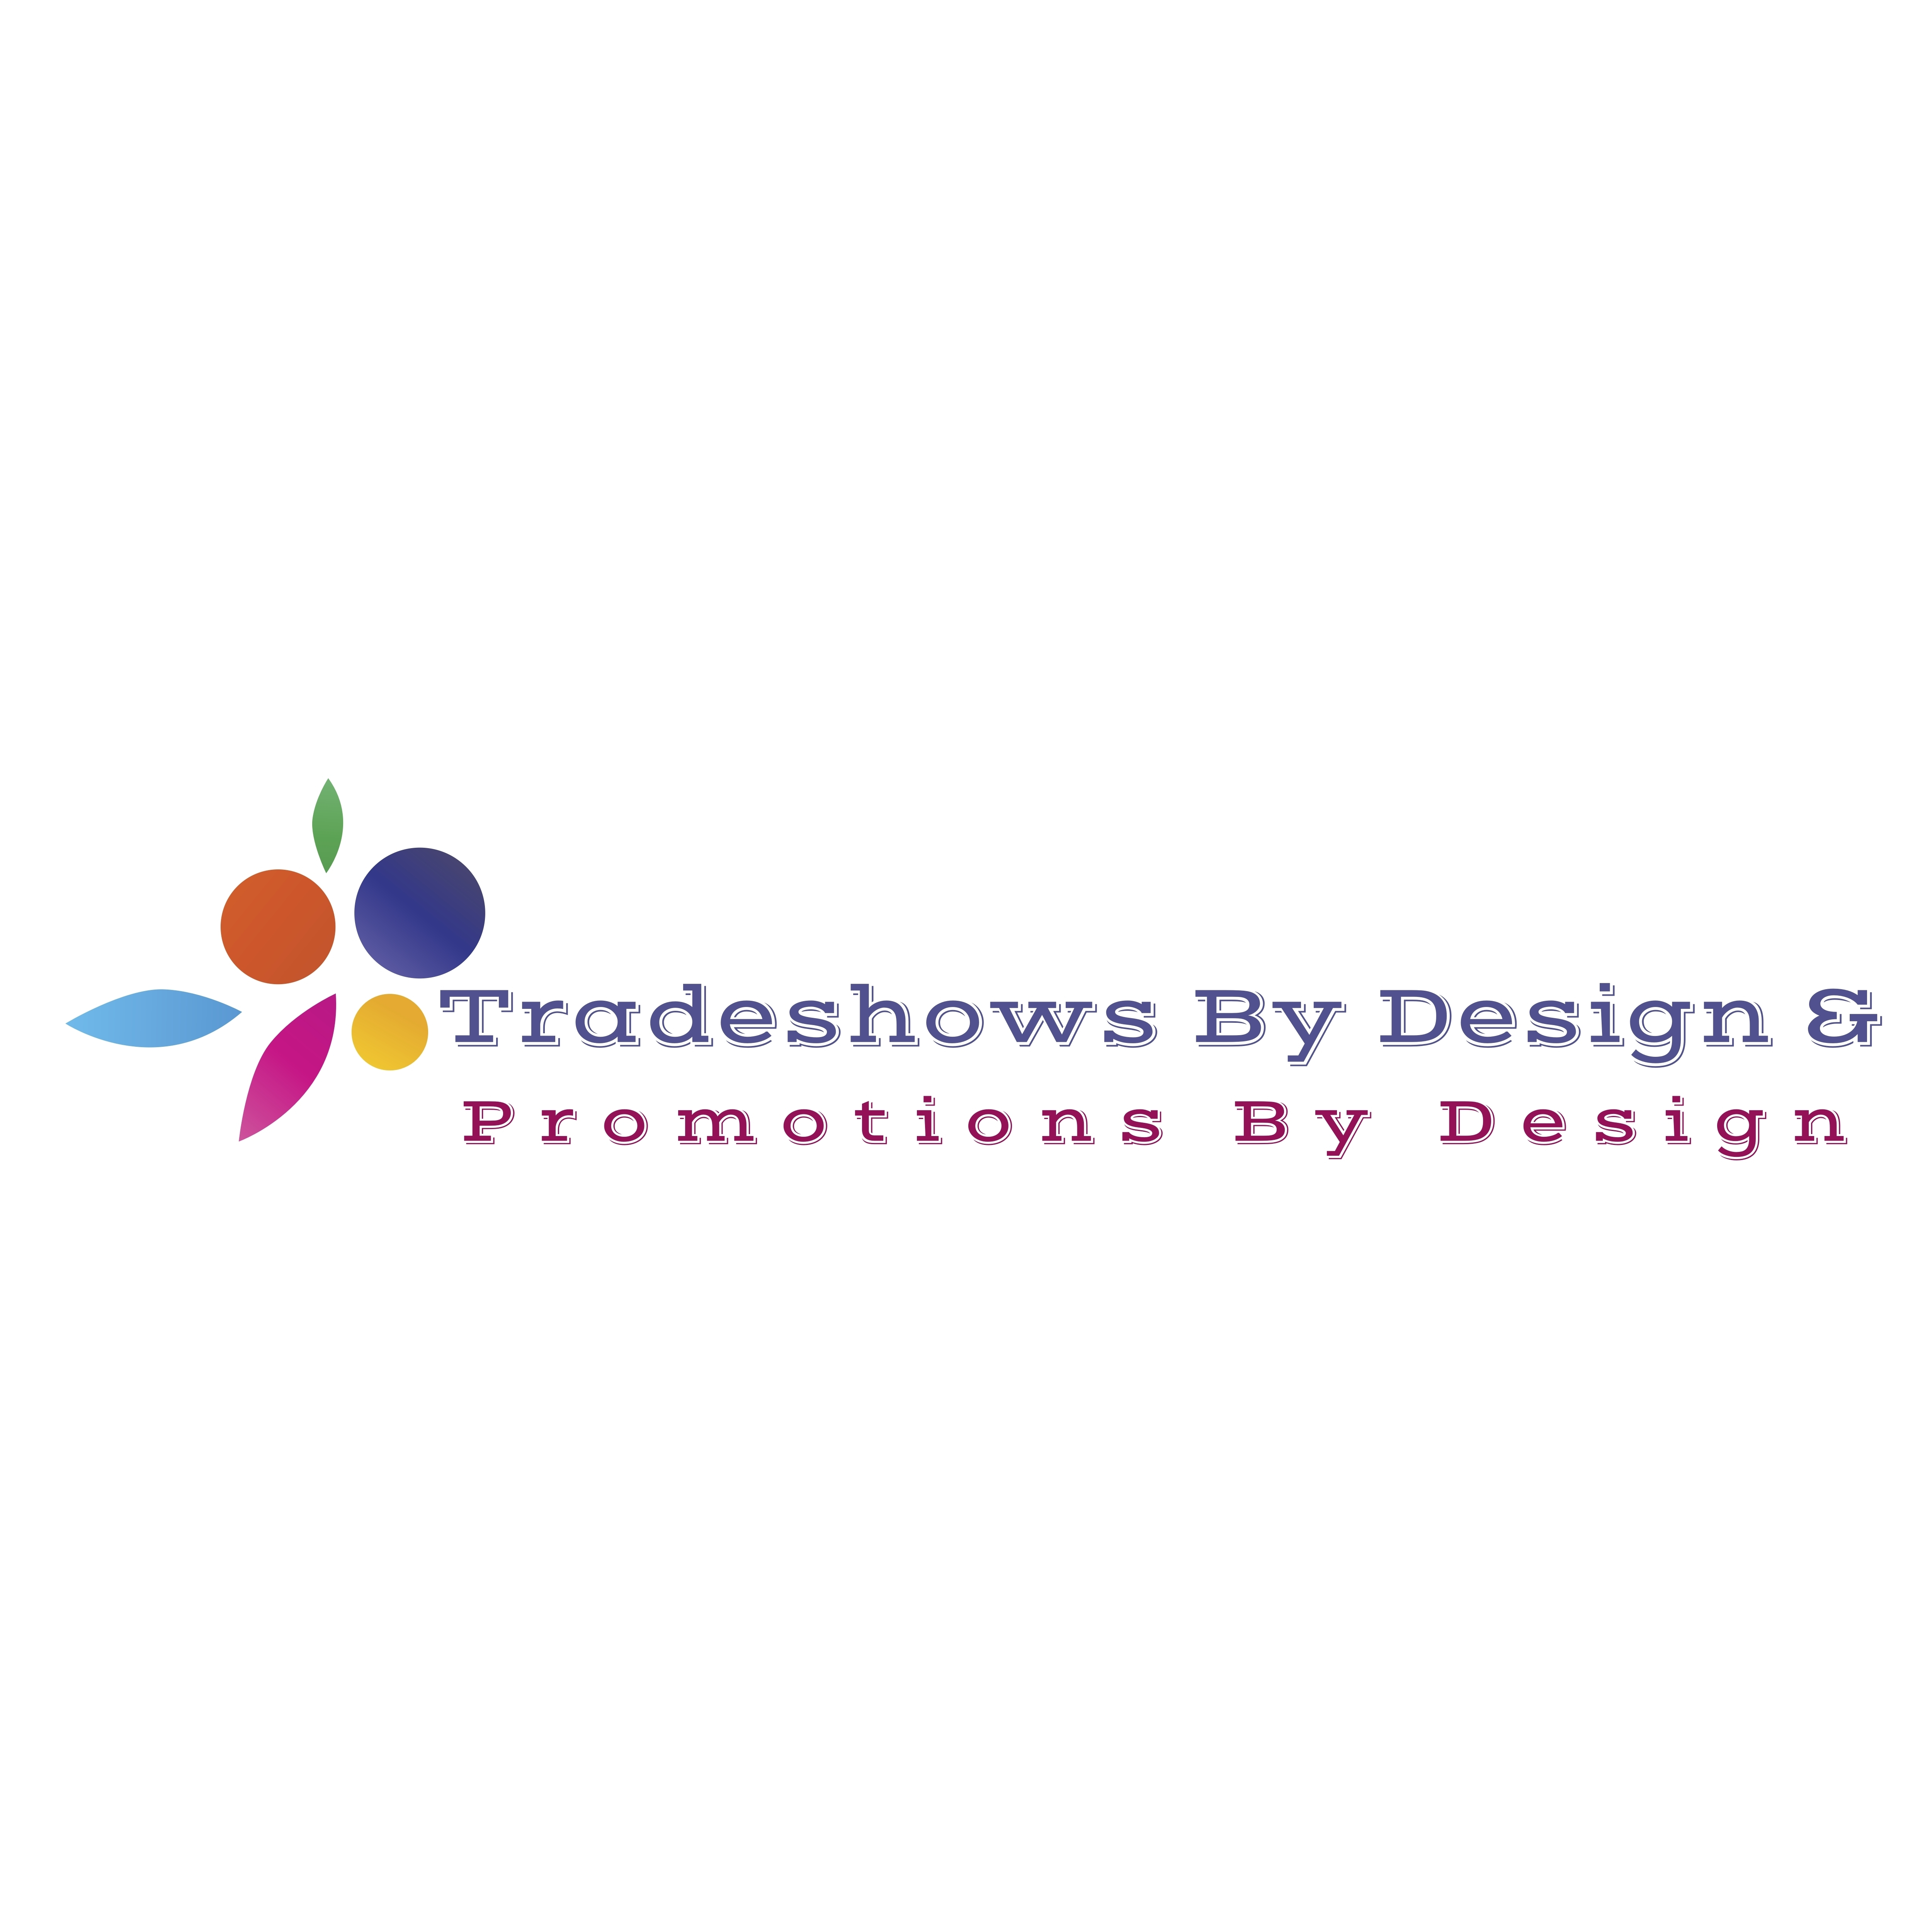 Tradeshows By Design & Promotions By Design